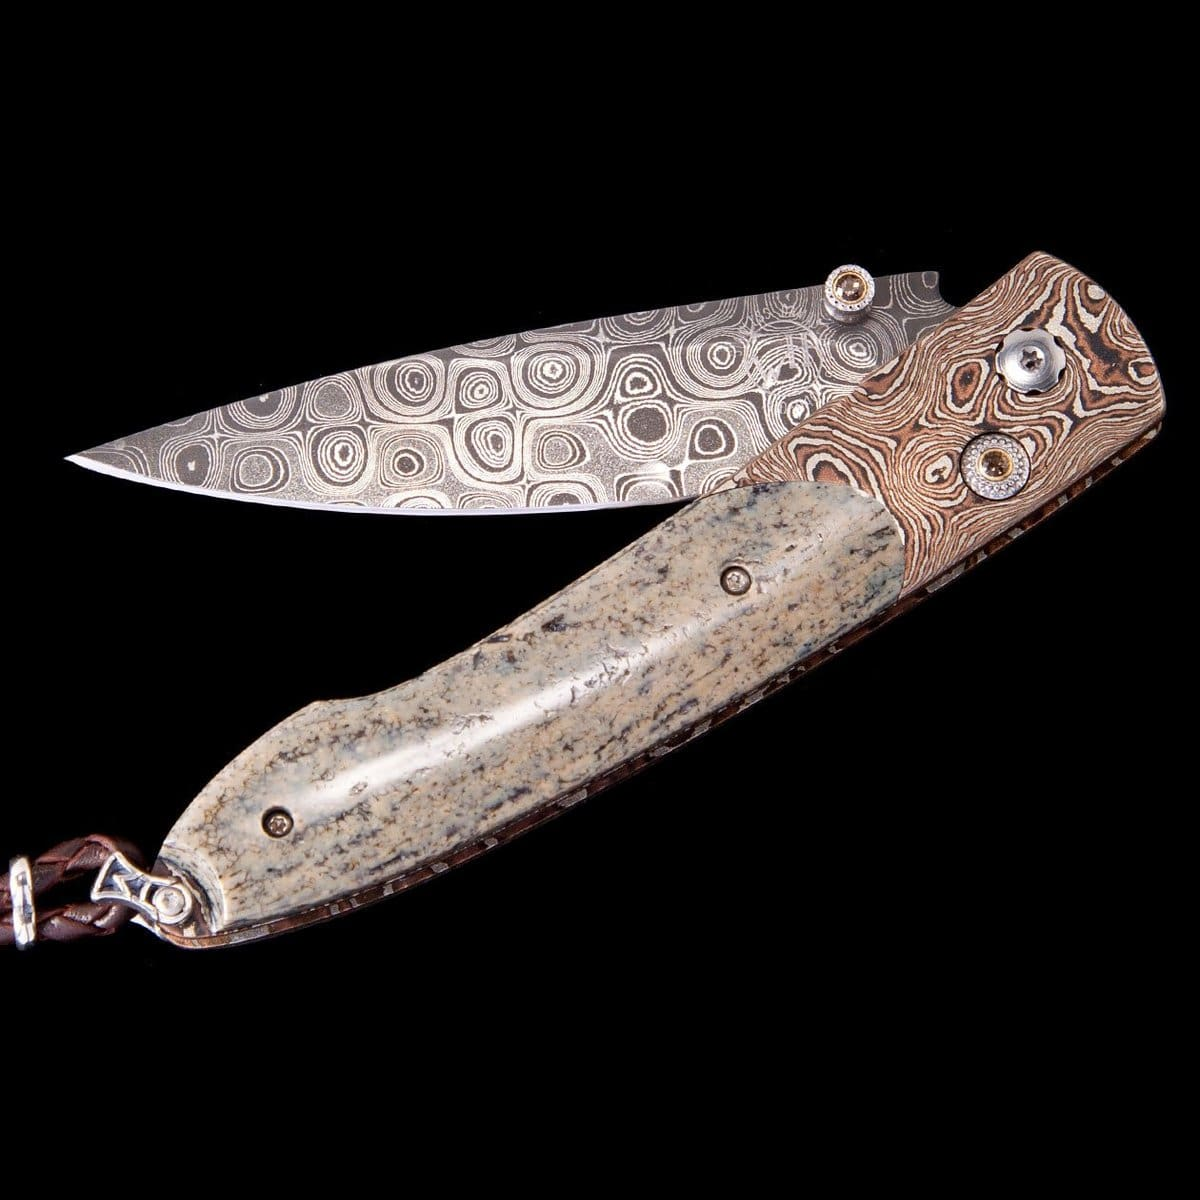 Lancet Arctic Limited Edition Knife - B10 ARCTIC-William Henry-Renee Taylor Gallery